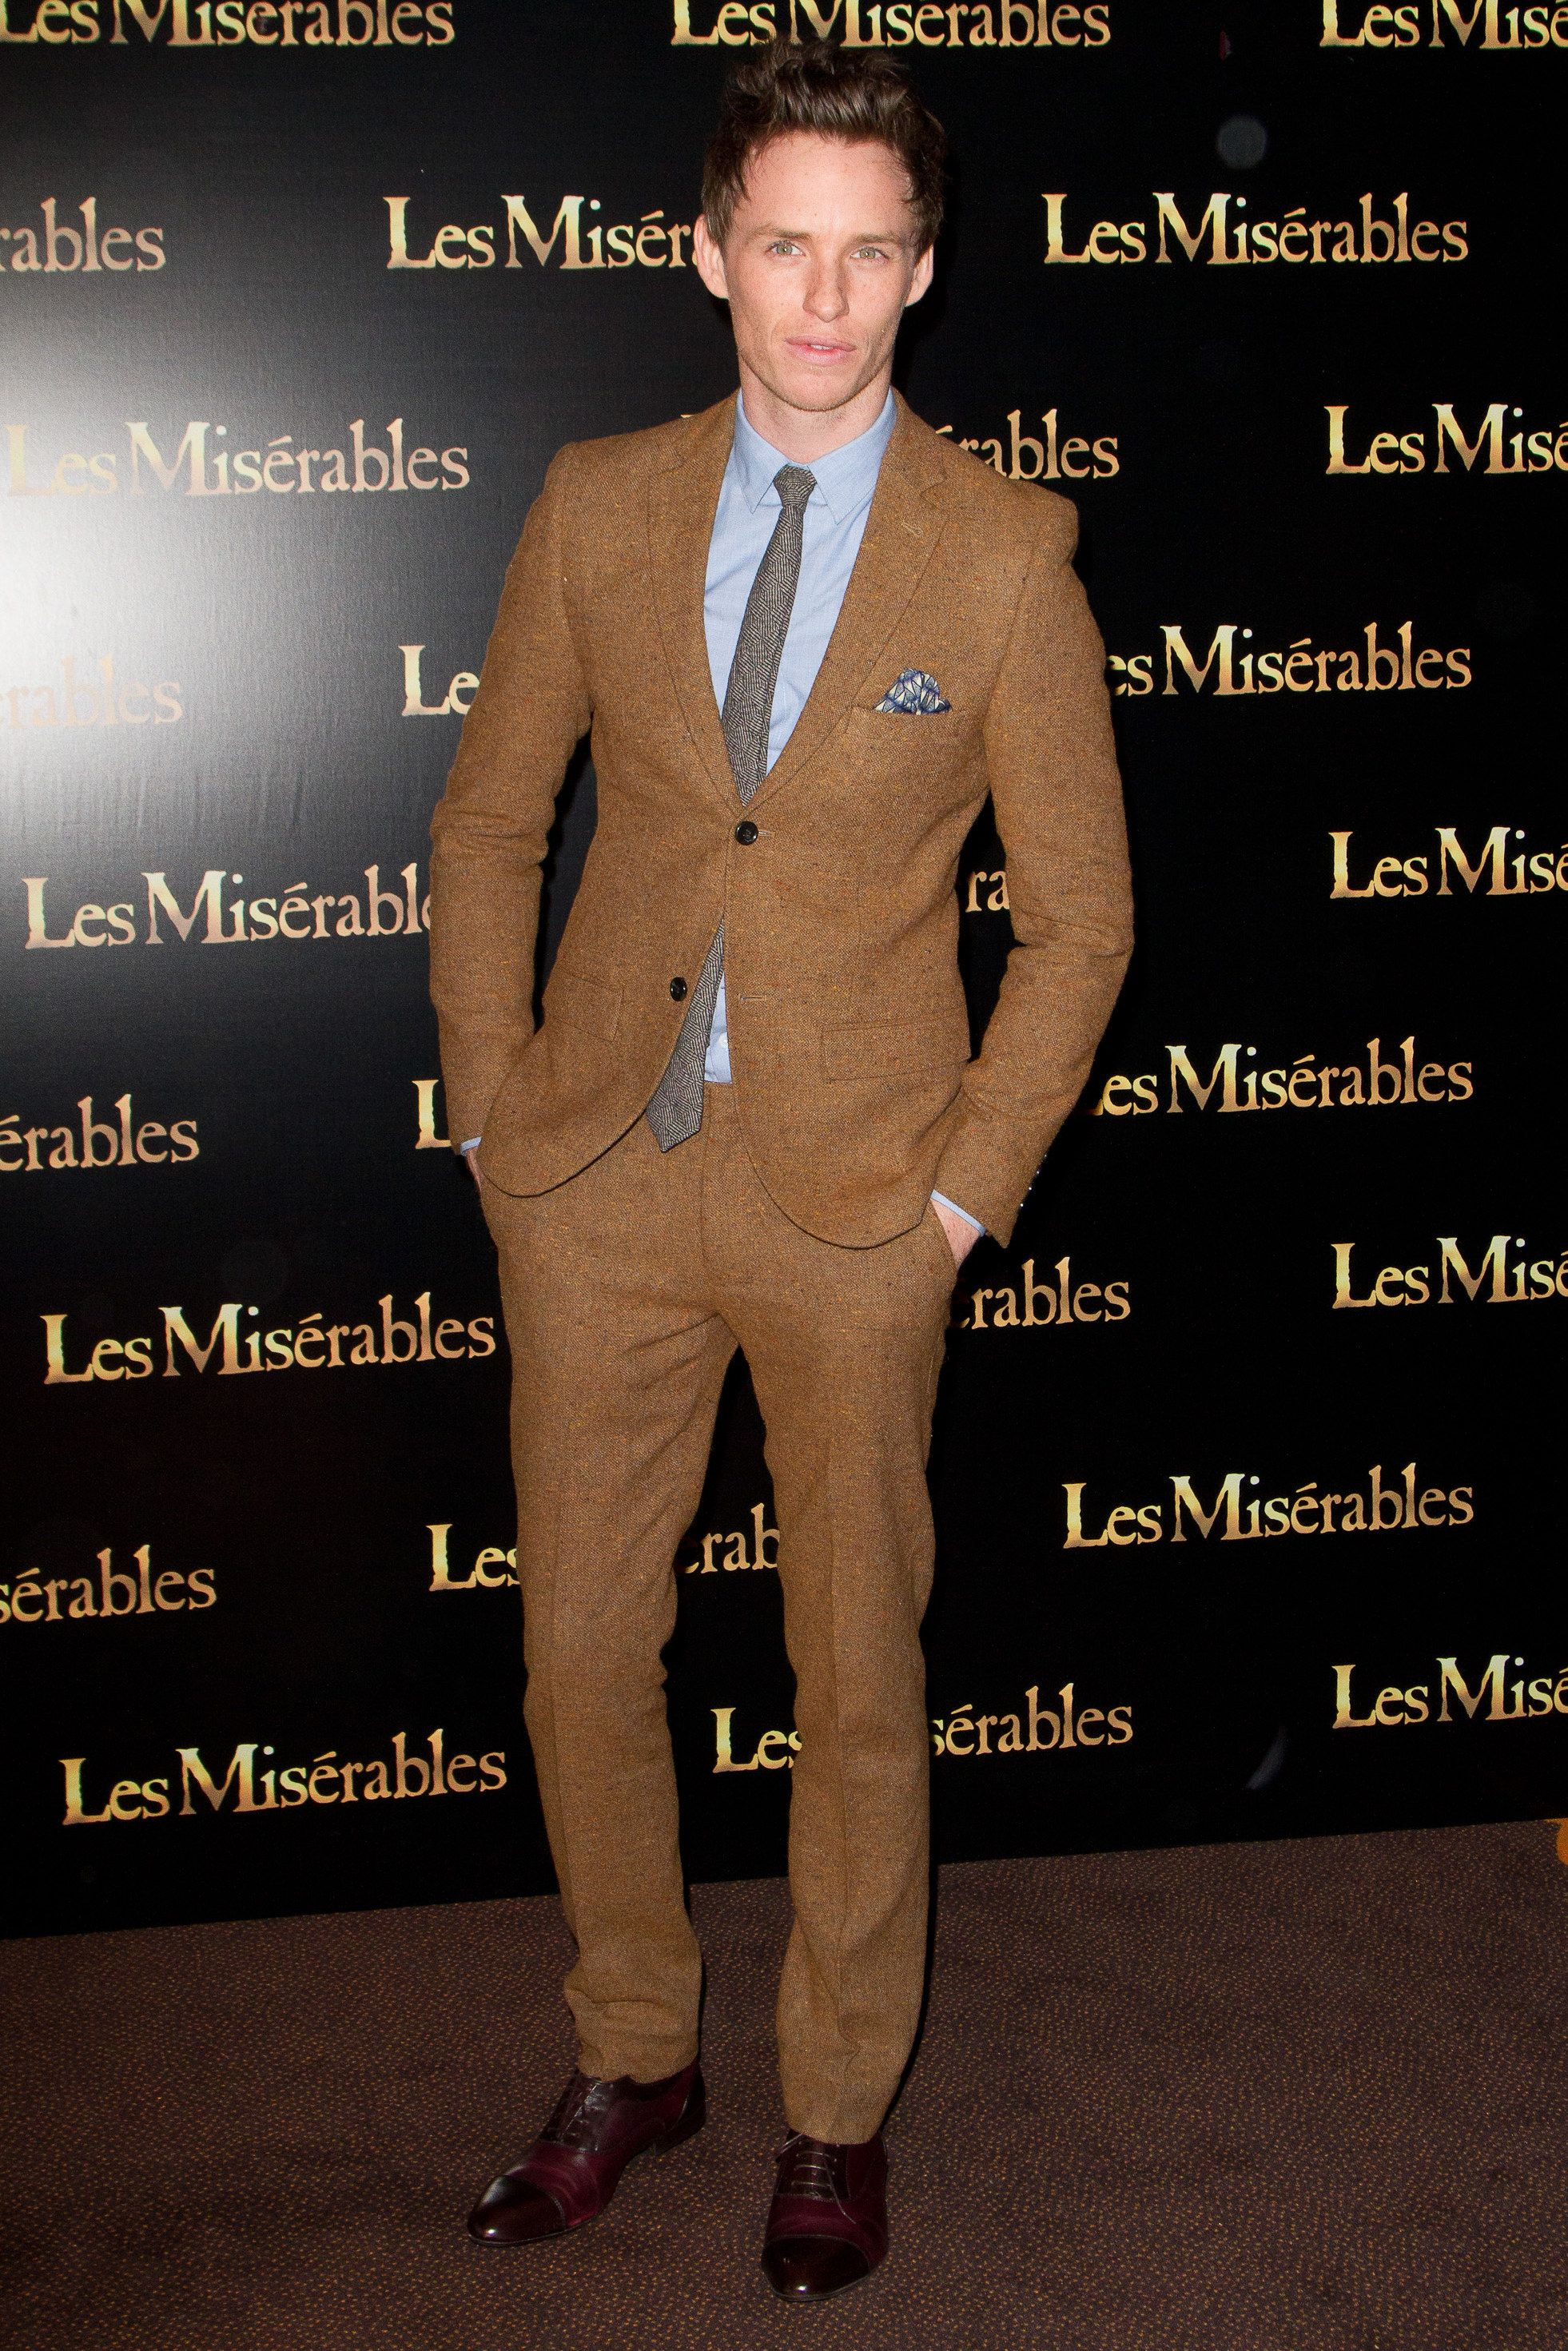 Forum on this topic: Eddie Redmayne Poses For GQ US: See , eddie-redmayne-poses-for-gq-us-see/